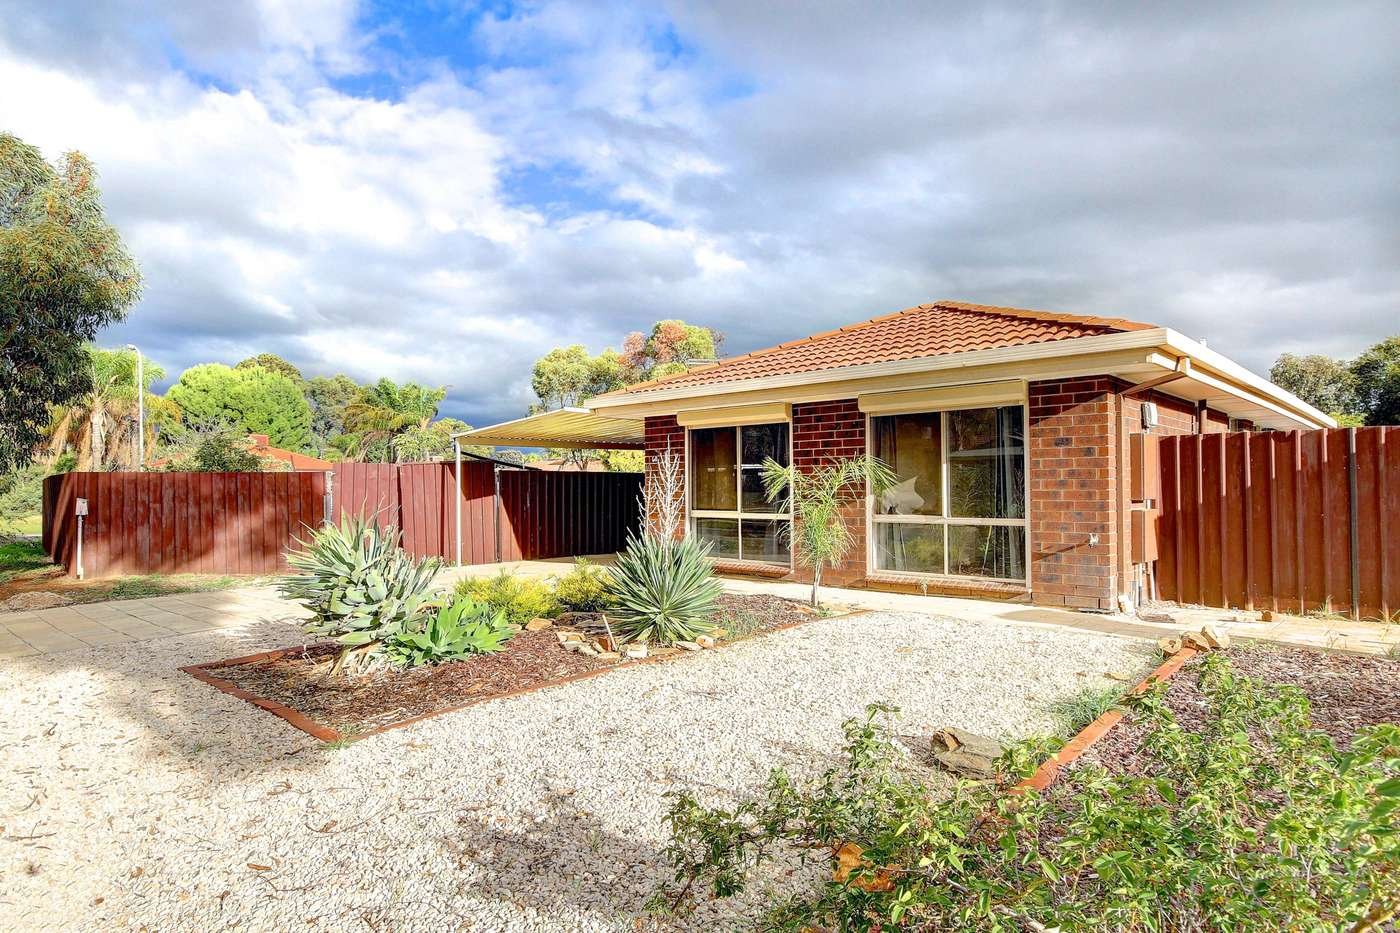 Main view of Homely house listing, 60 Caulfield Crescent, Paralowie, SA 5108